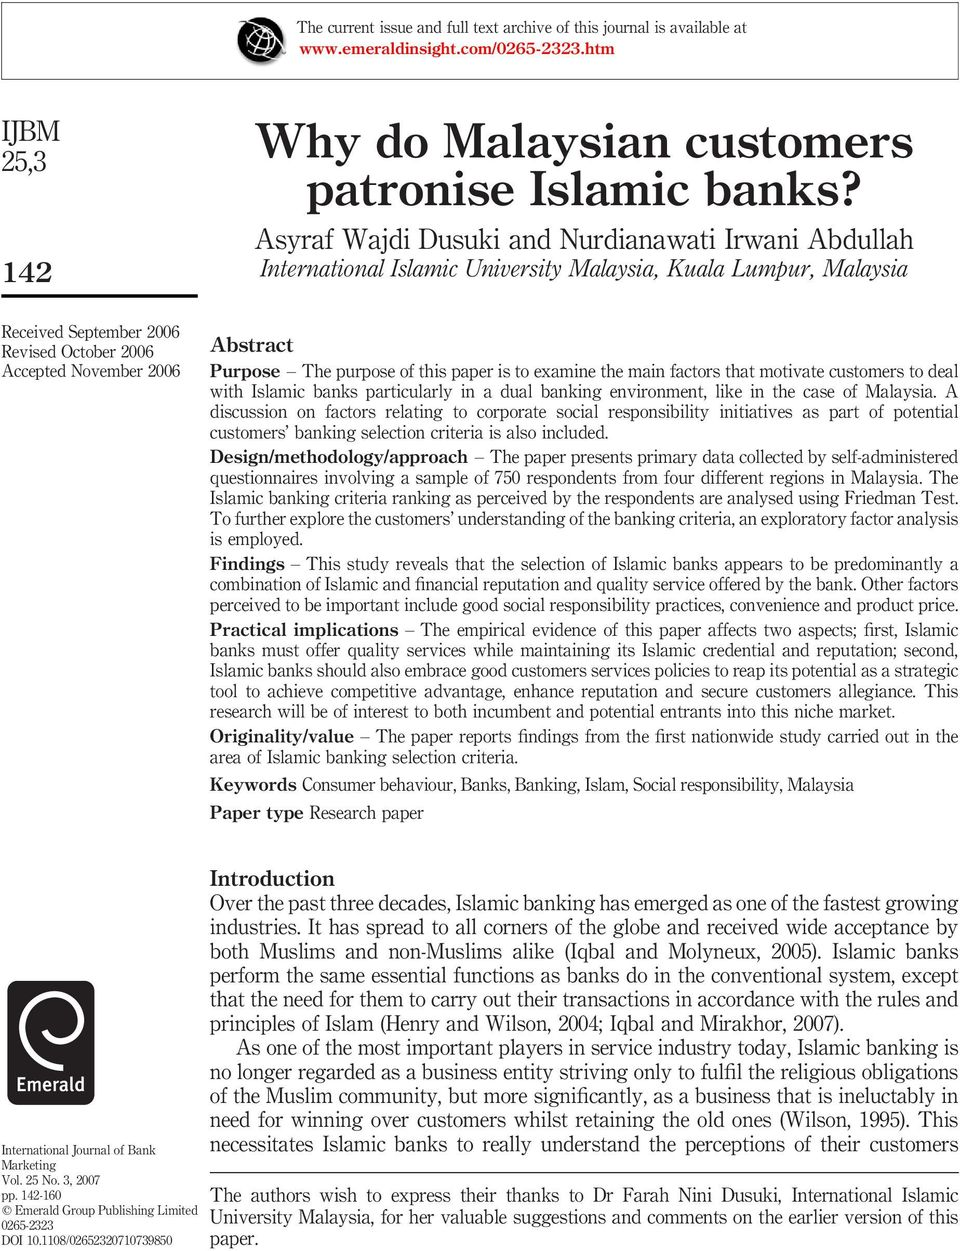 Purpose The purpose of this paper is to examine the main factors that motivate customers to deal with Islamic banks particularly in a dual banking environment, like in the case of Malaysia.